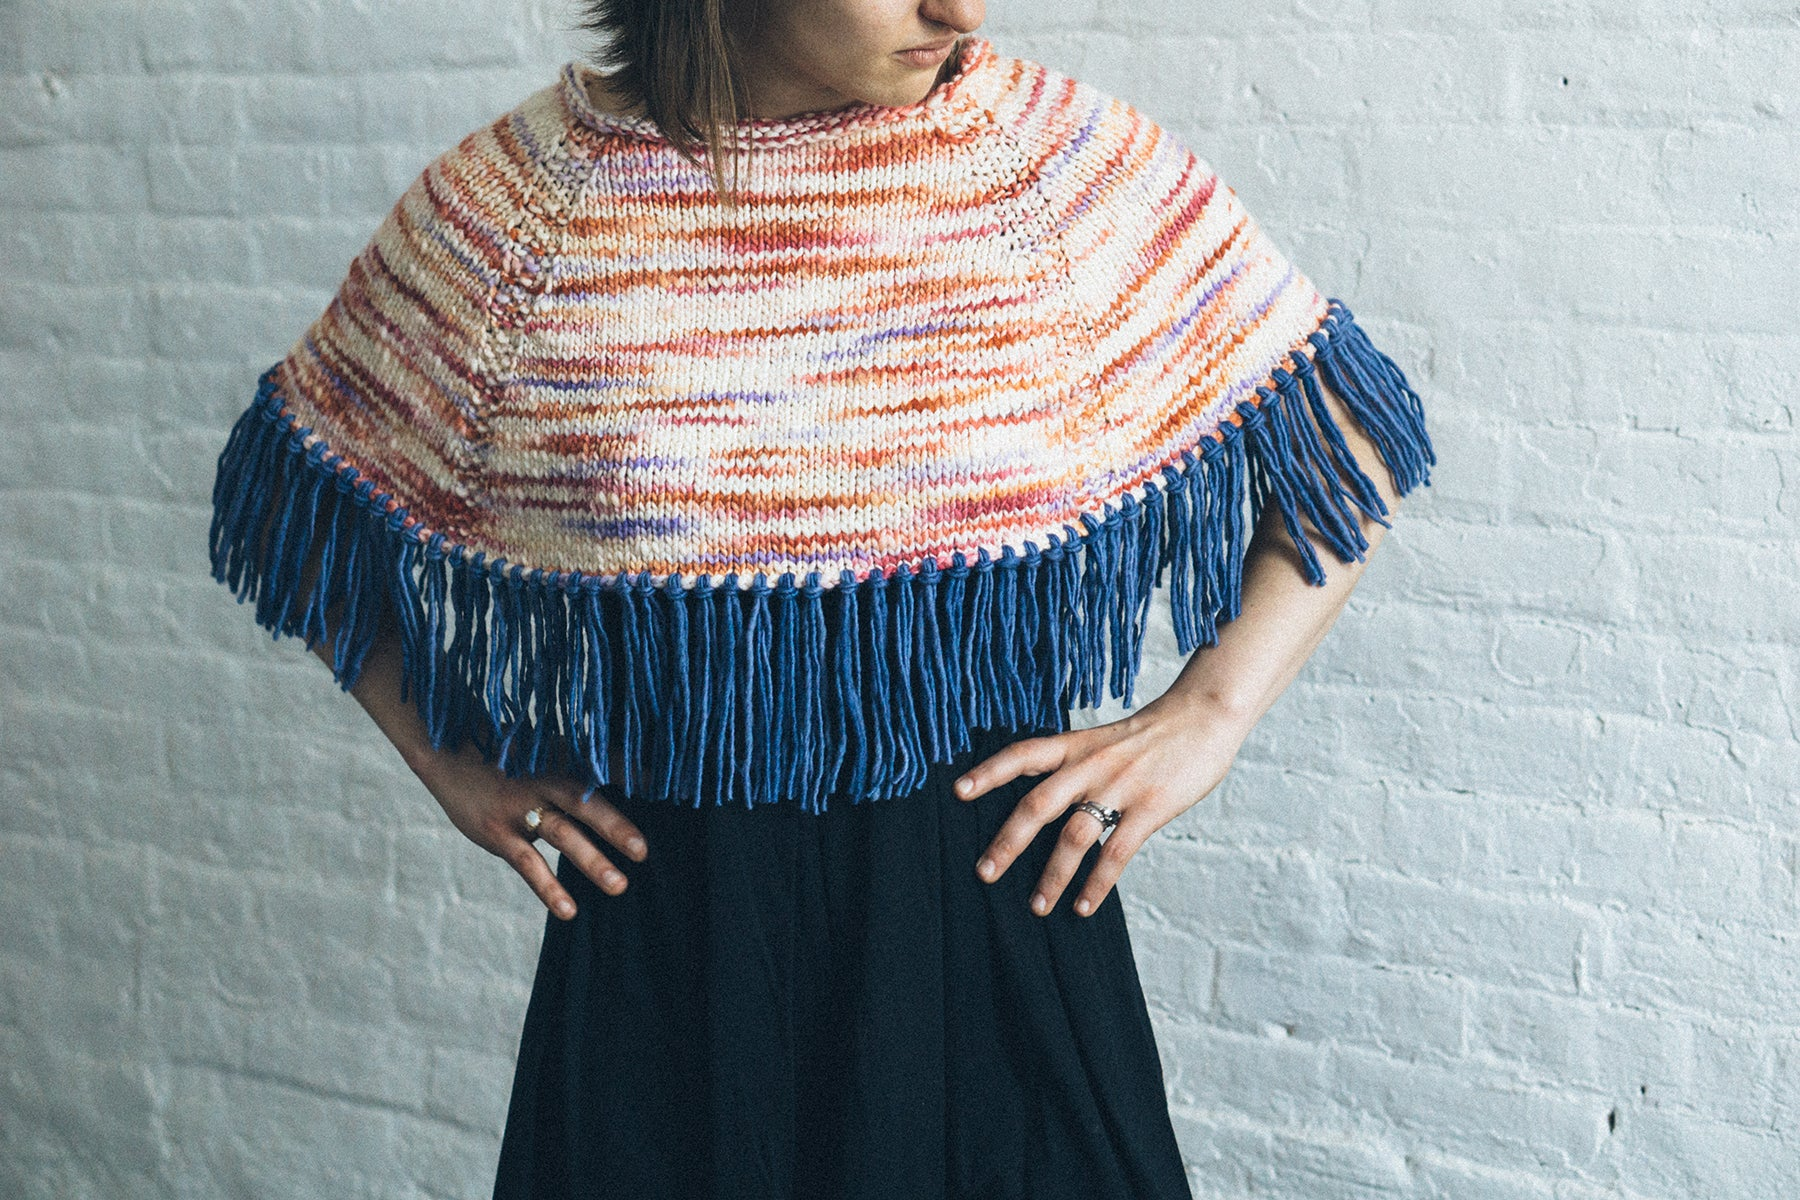 Knitted poncho with fringe made from handspun yarn in aran weight.